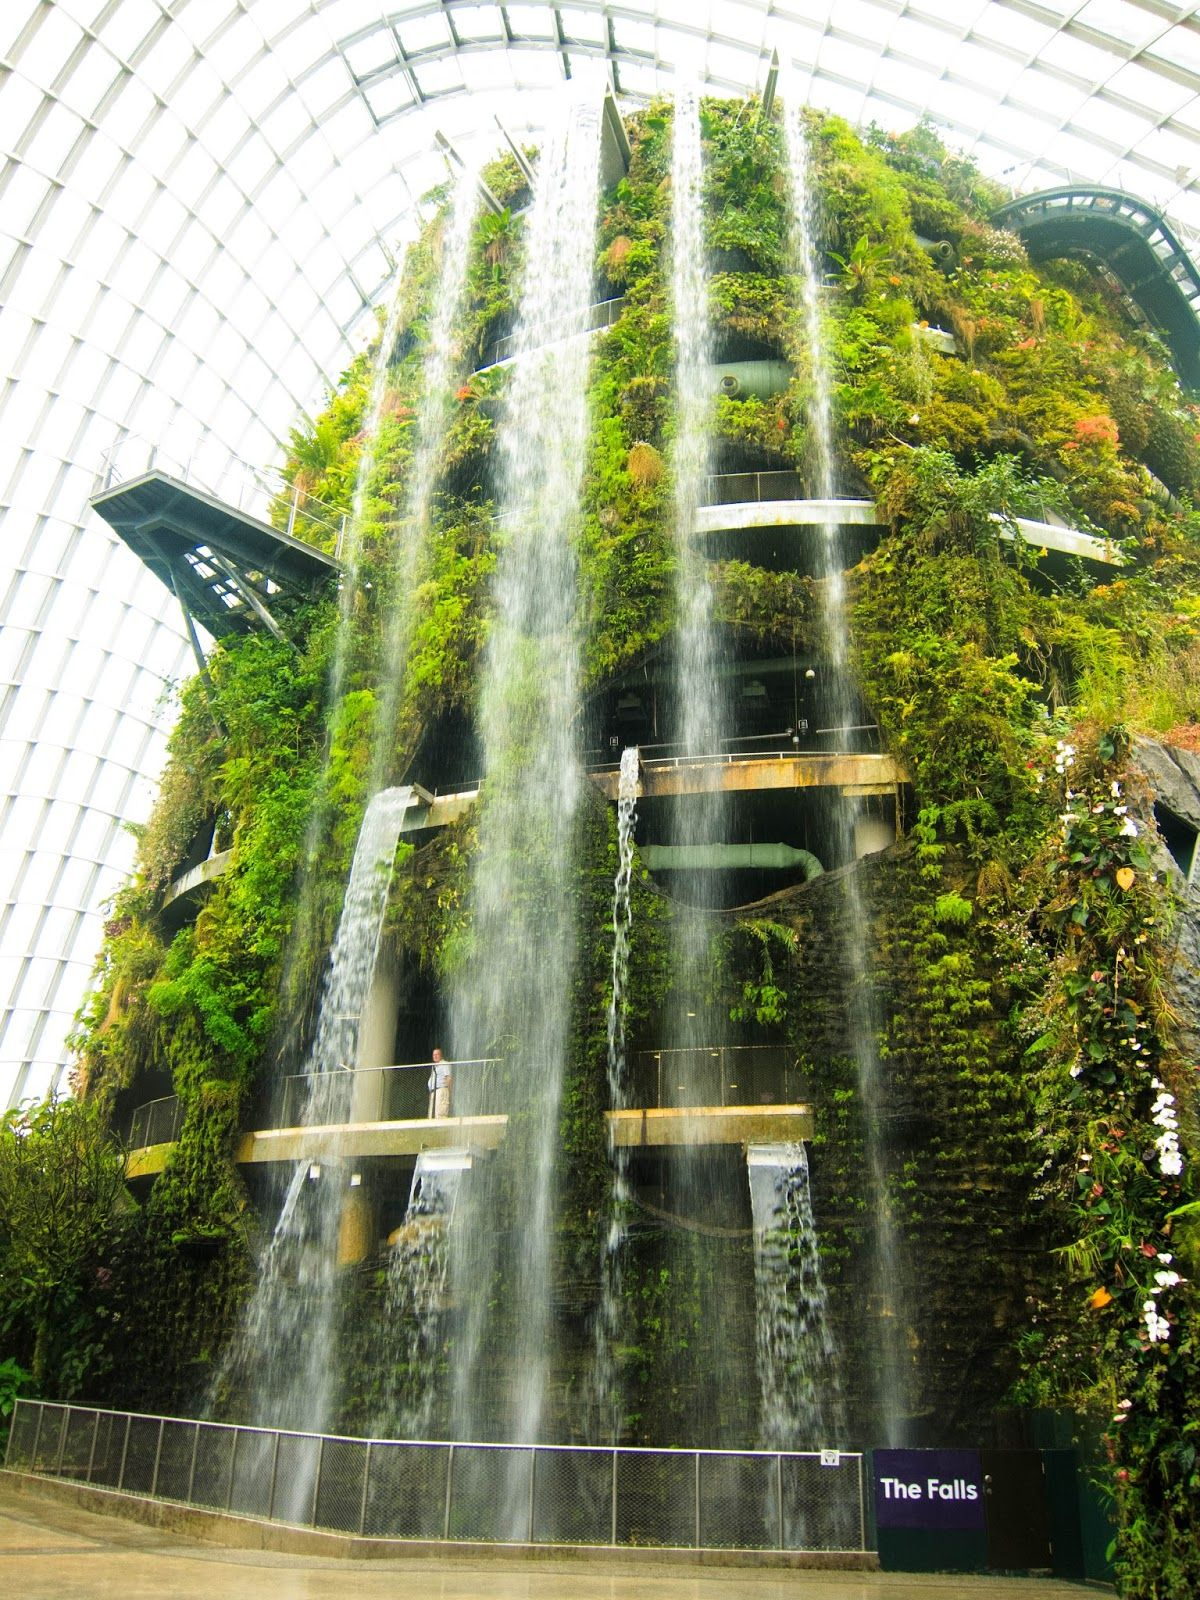 green vic commercial gardens uni melbourne city walls inner inside and nature garden vertical indoor wall